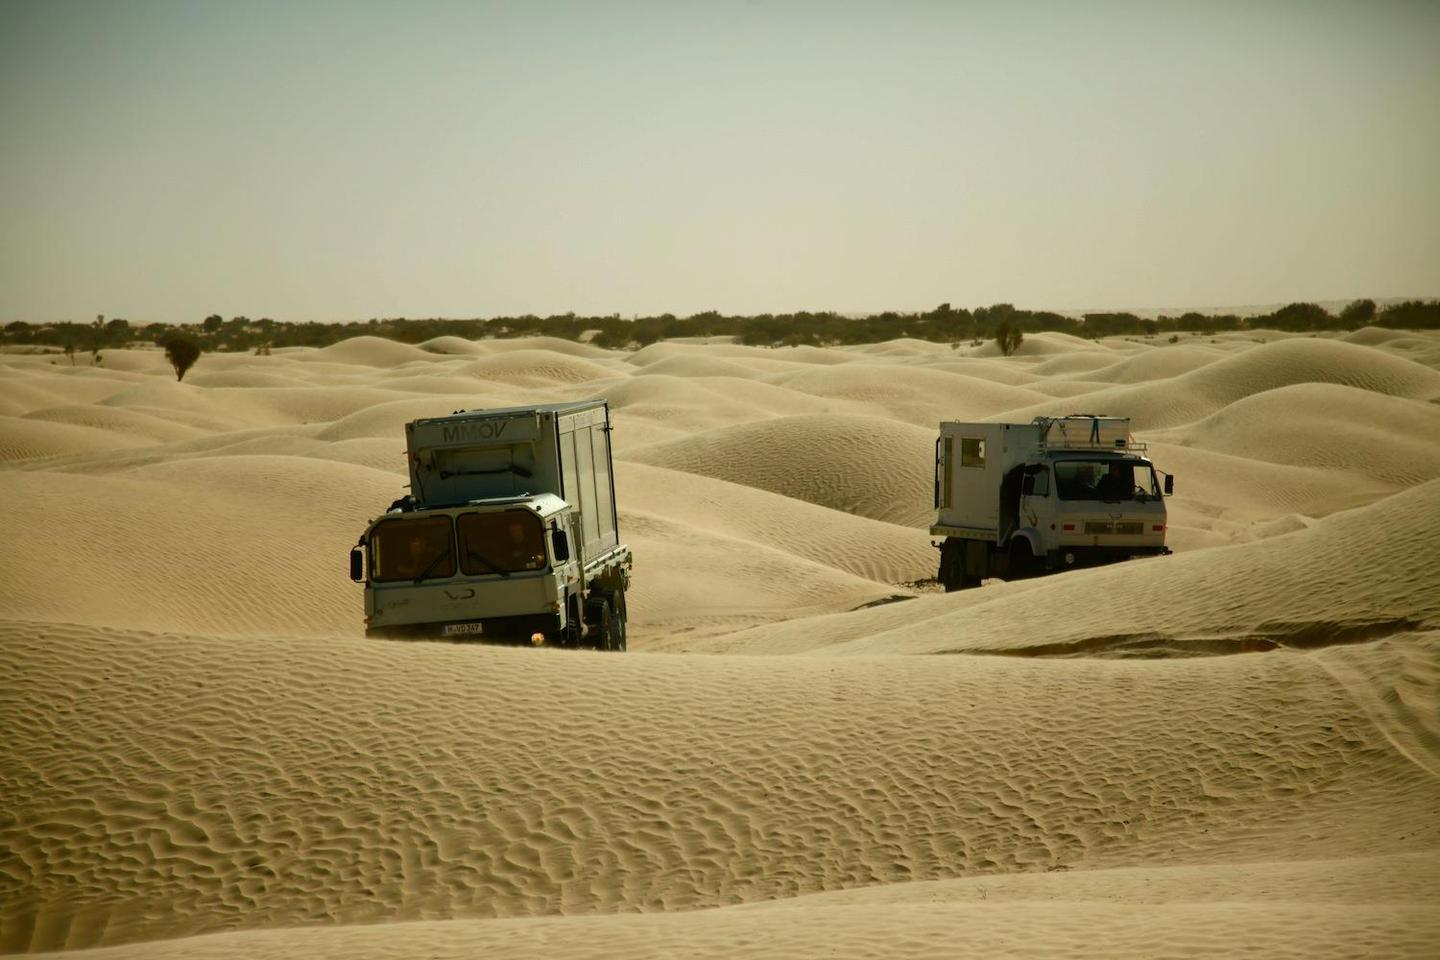 The MMOVE fleet had to be rugged and capable to haul equipment and crew over this unrelenting terrain